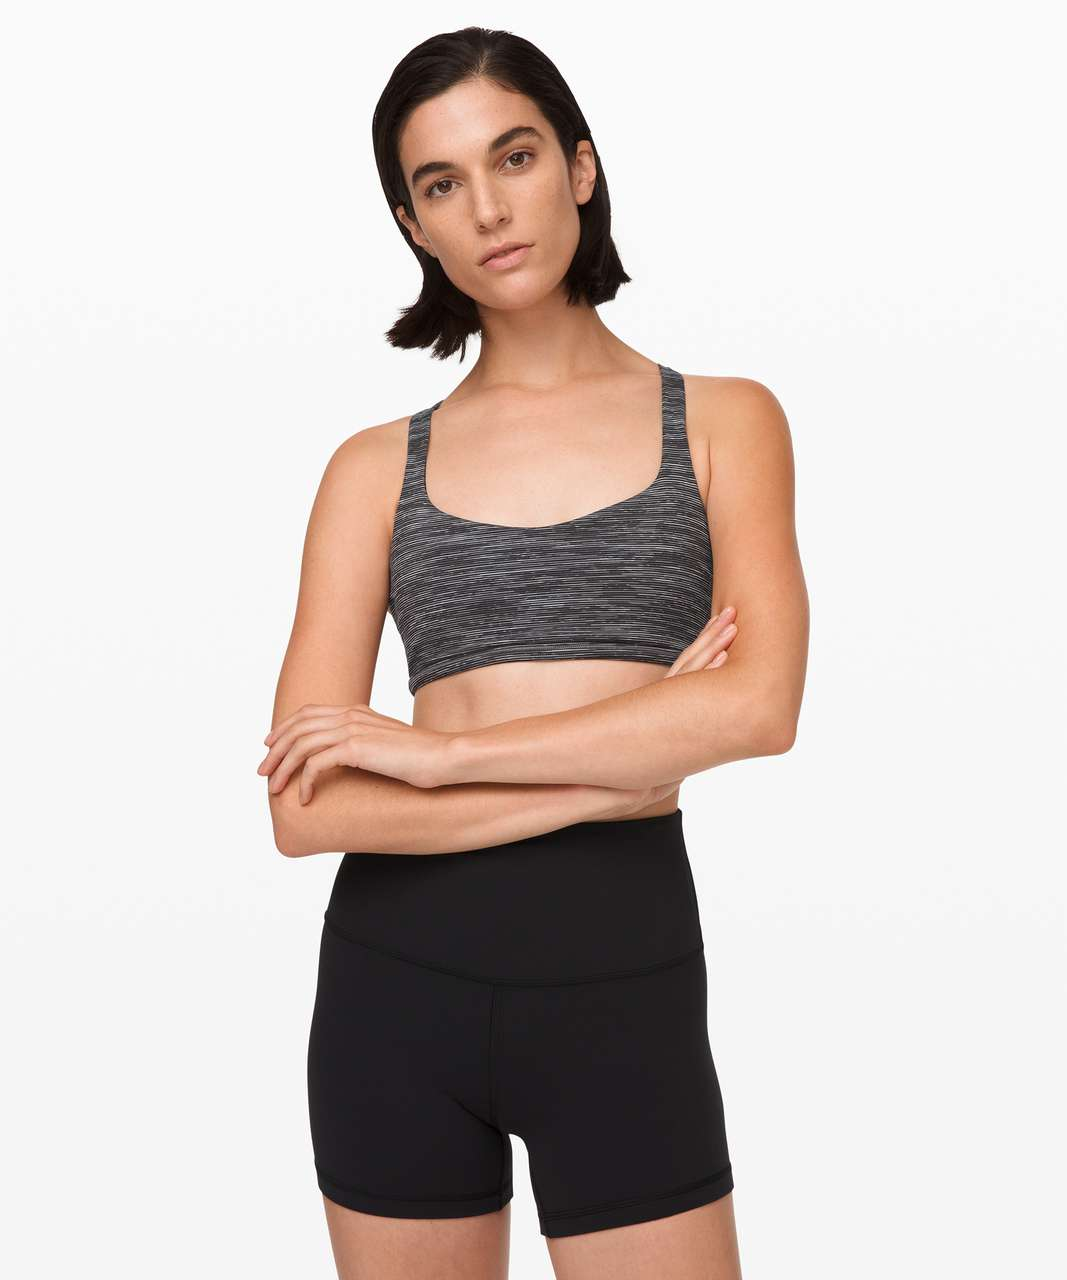 Lululemon Free To Be Bra (Wild) - Wee Are From Space Dark Carbon Ice Grey